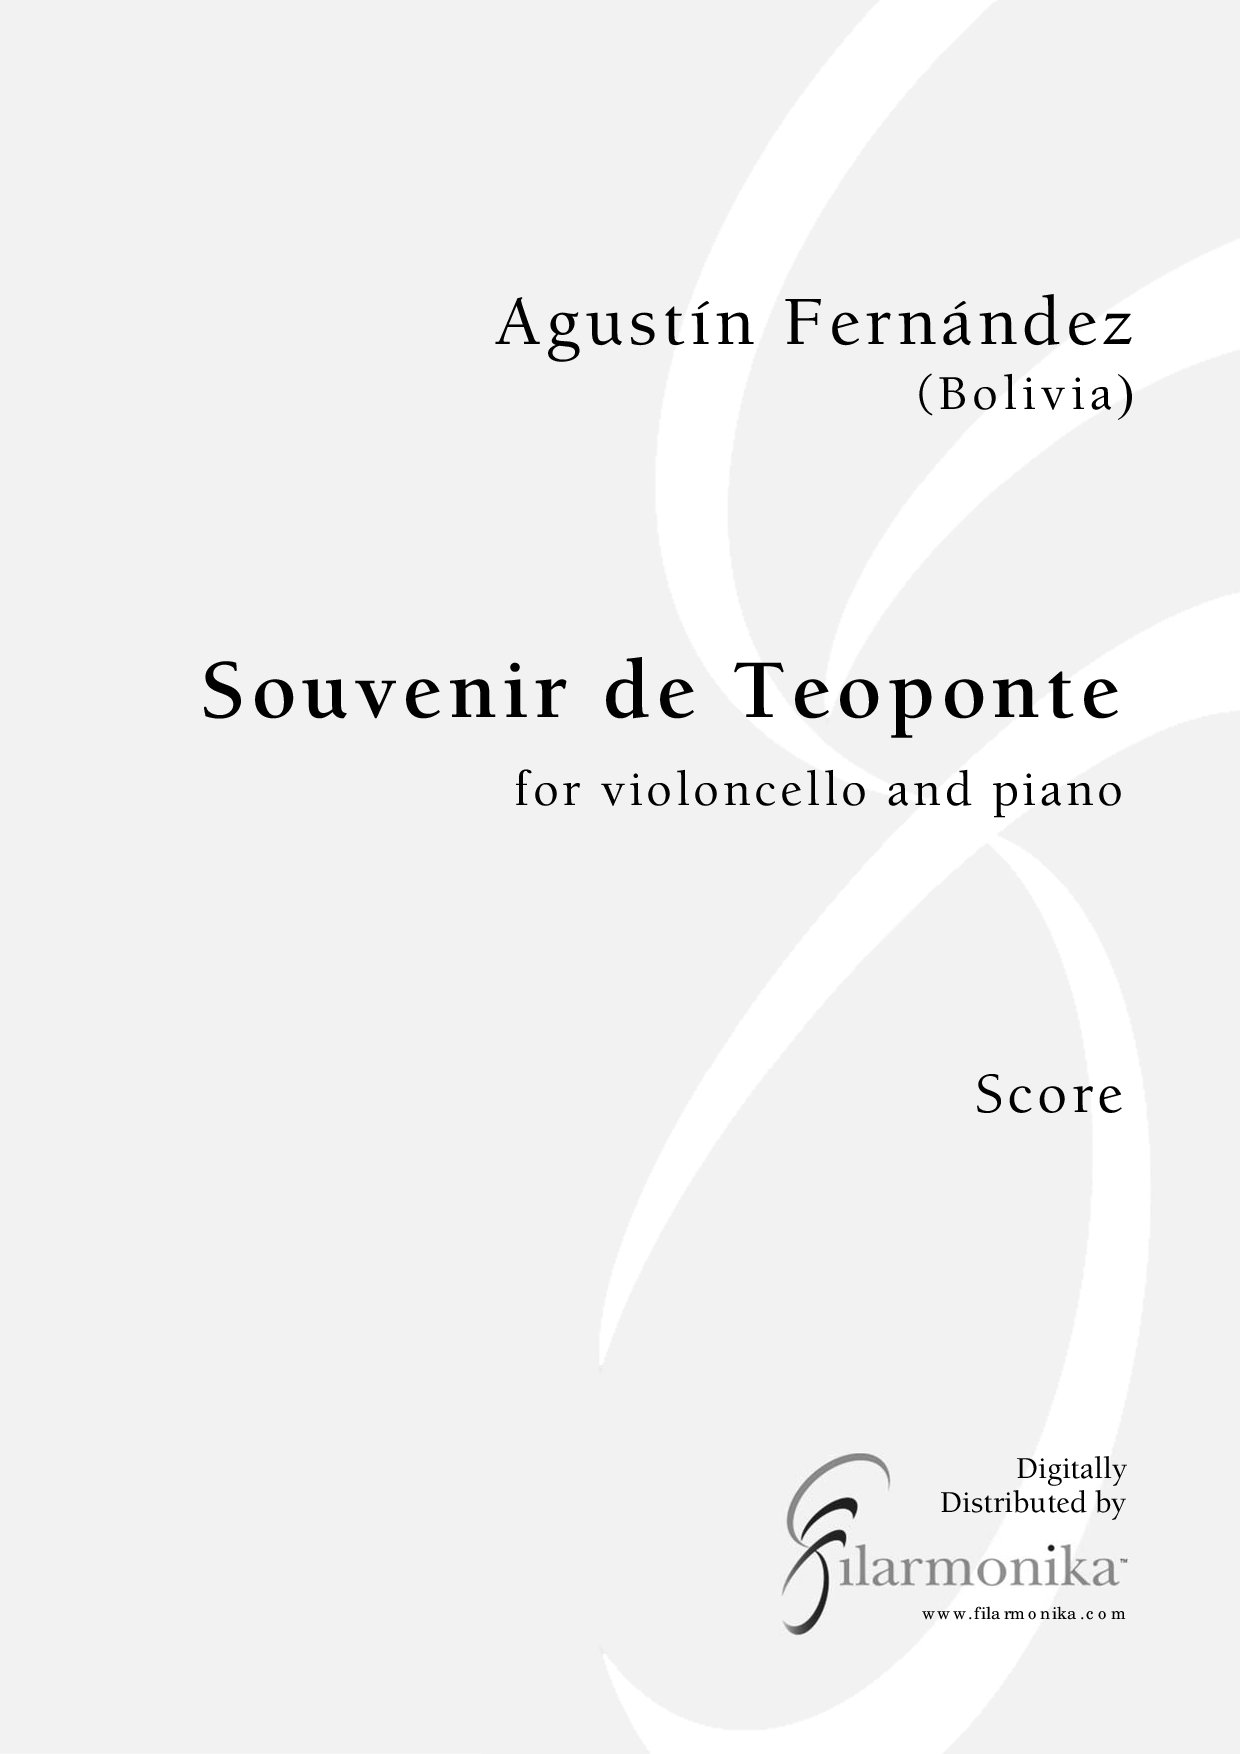 Souvenir de Teoponte, for cello and piano